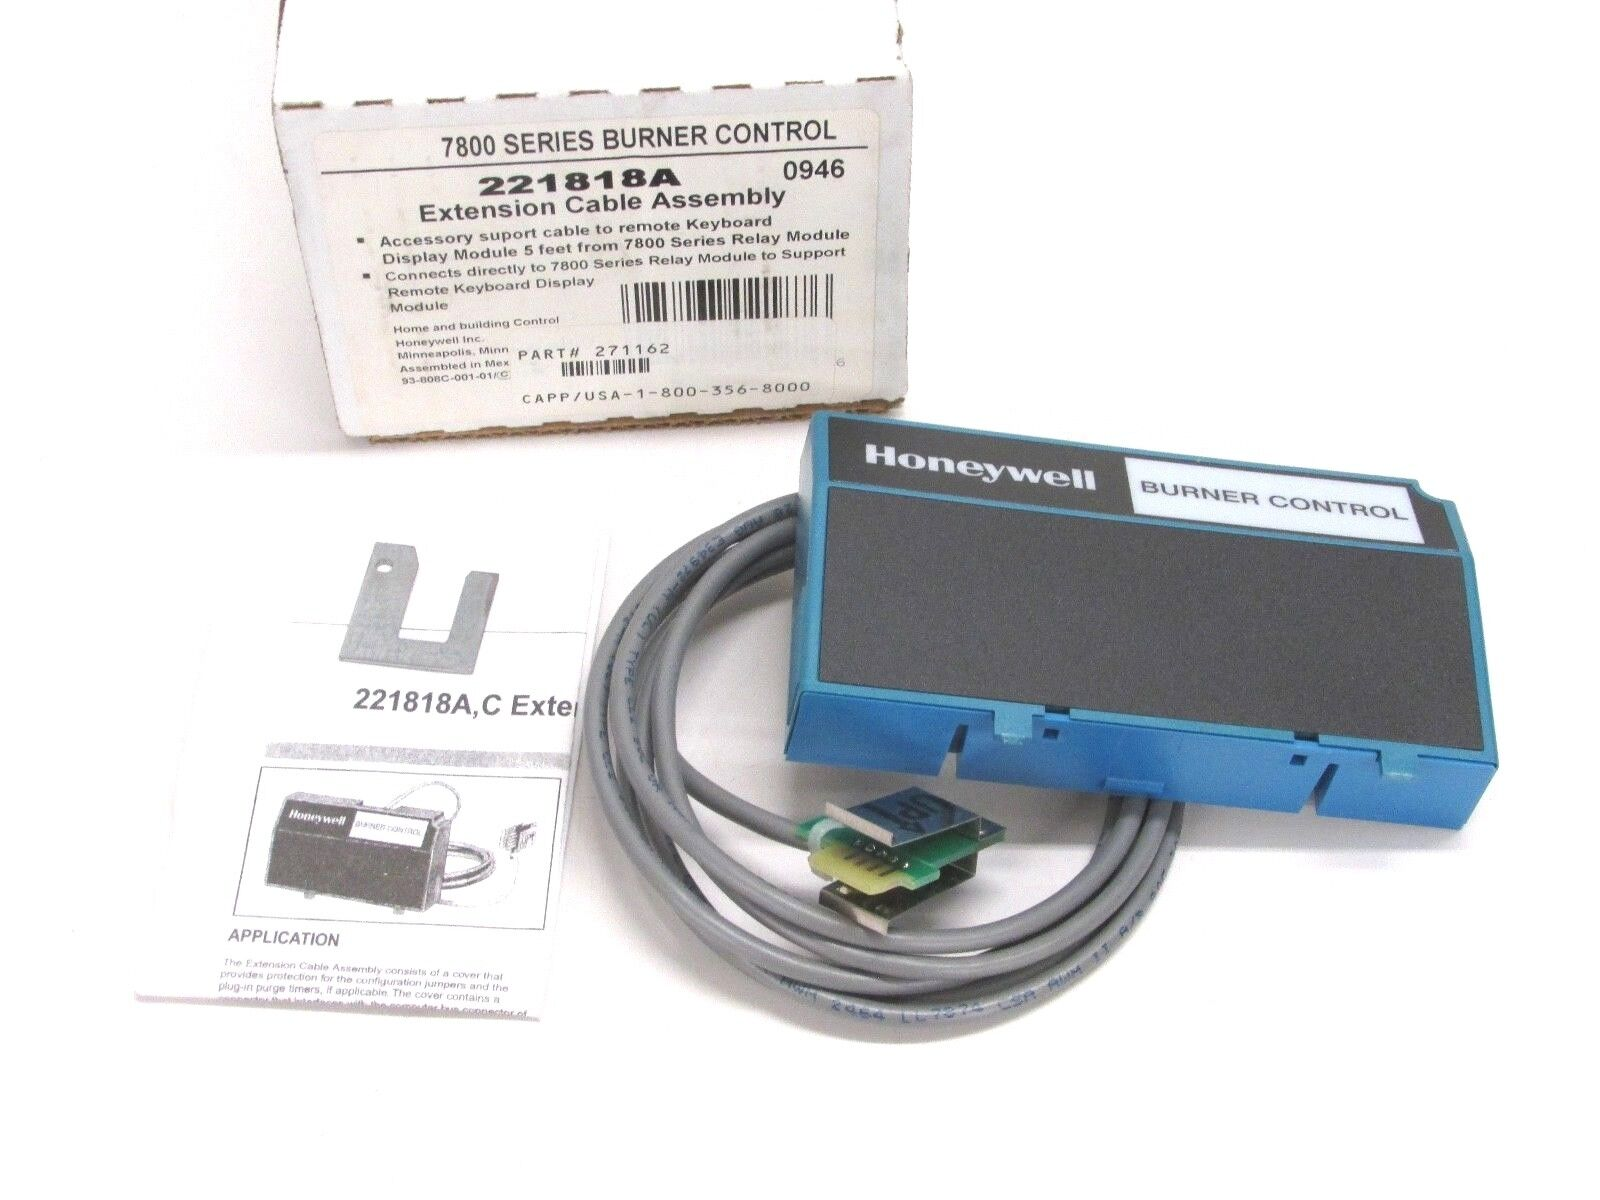 Honeywell LXE Scanner 8800 30-8500A053CBL7USB 7ft Cable Assy USB Type A USB Type A, 7ft